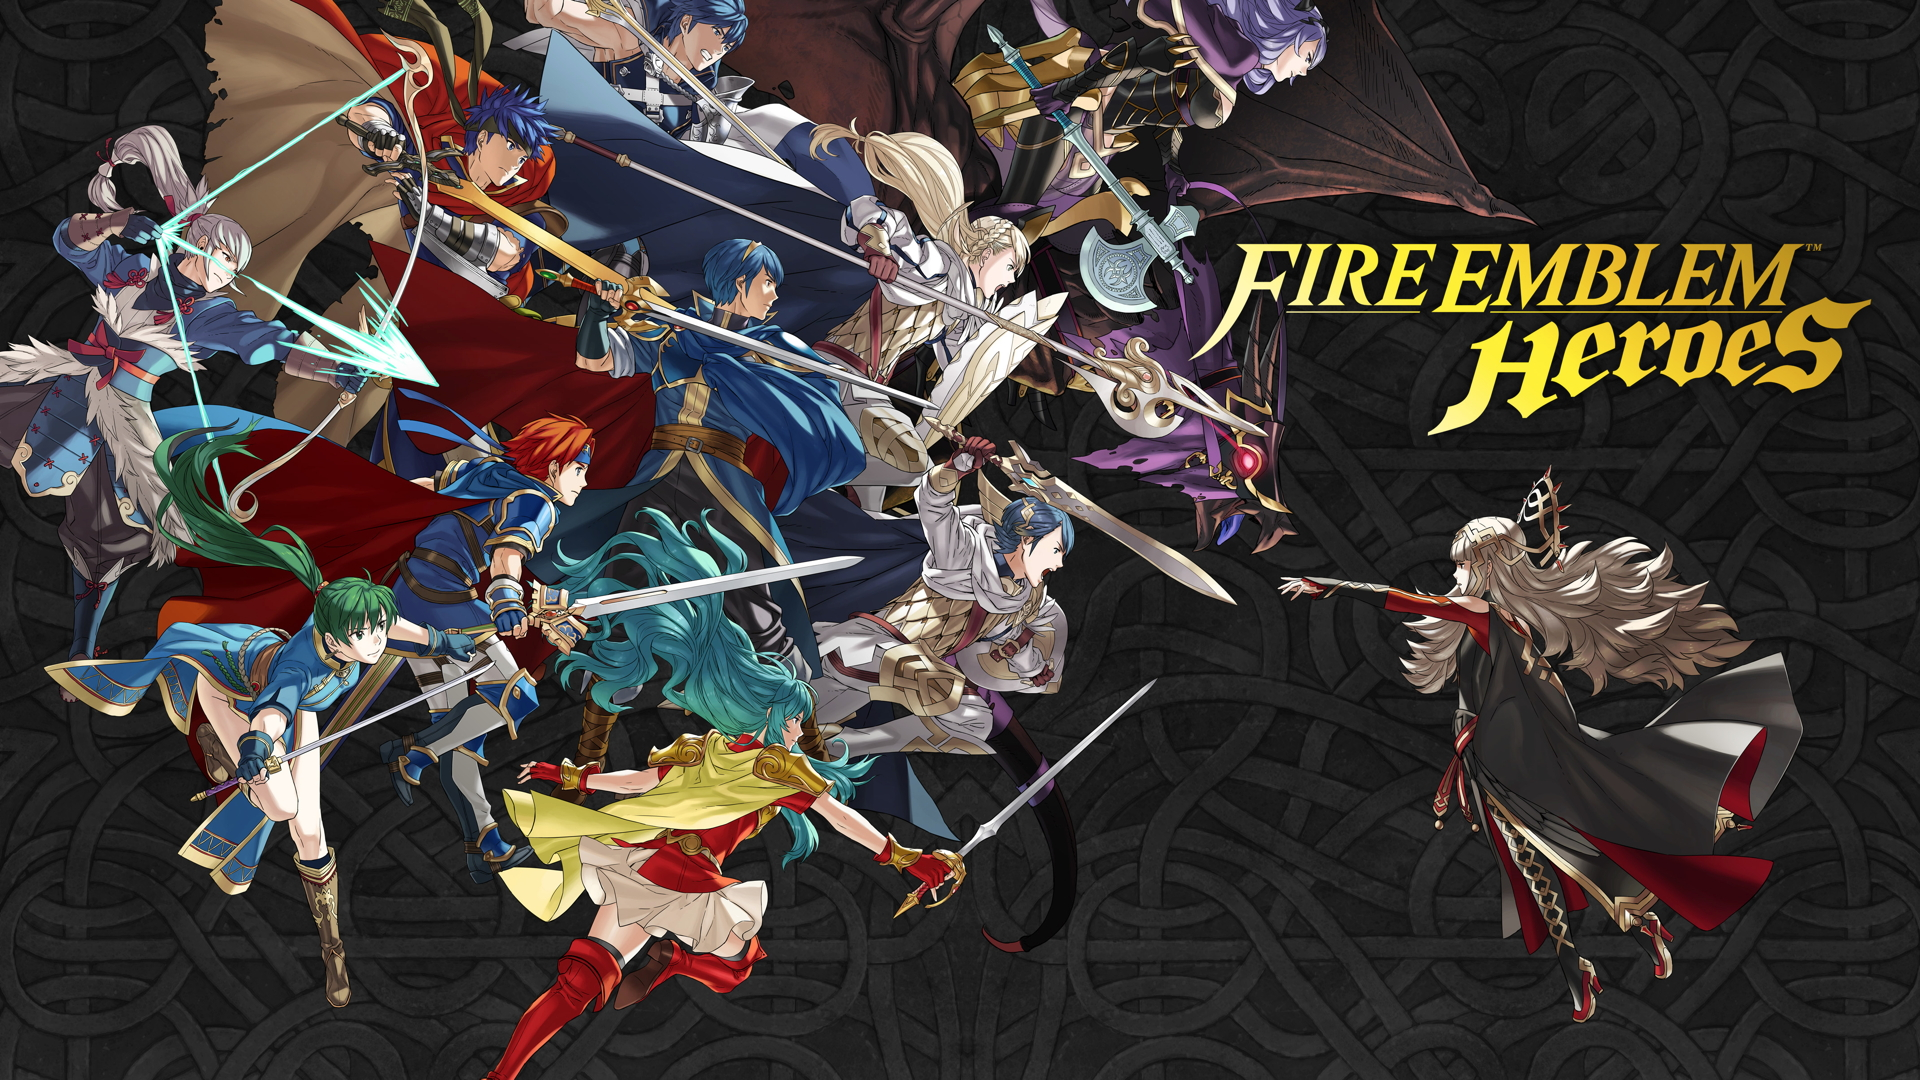 Fire Emblem Heroes tips - 8 things I wish I had known before playing